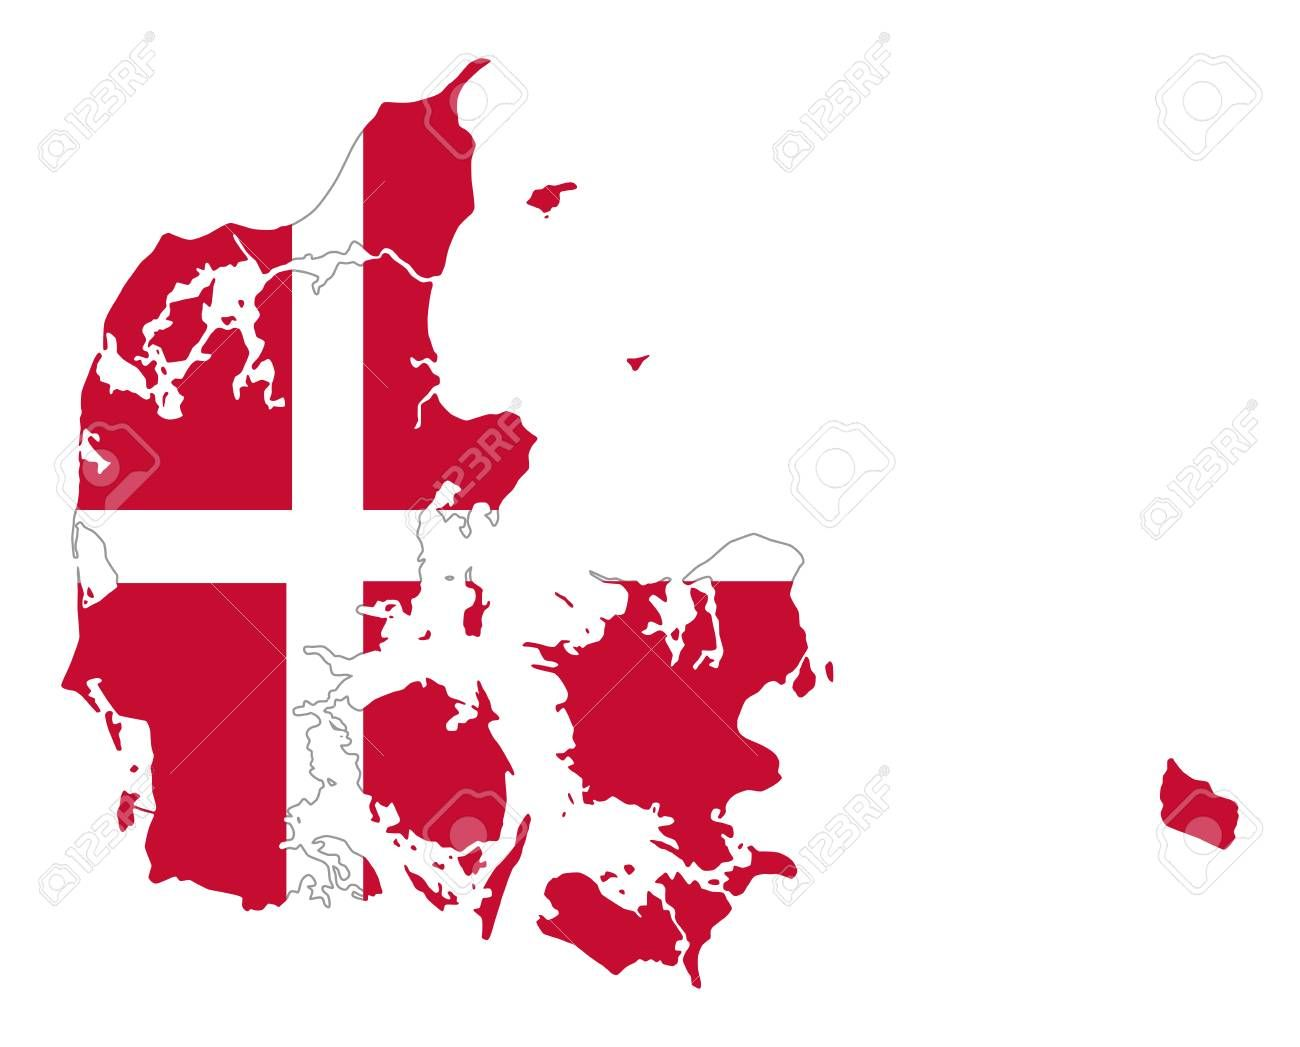 Flag Of Denmark In Country Silhouette Danish National State Ensign A White Scandinavian Cross On A Red Field King In 2020 Denmark Flag Scandinavian Nordic Countries